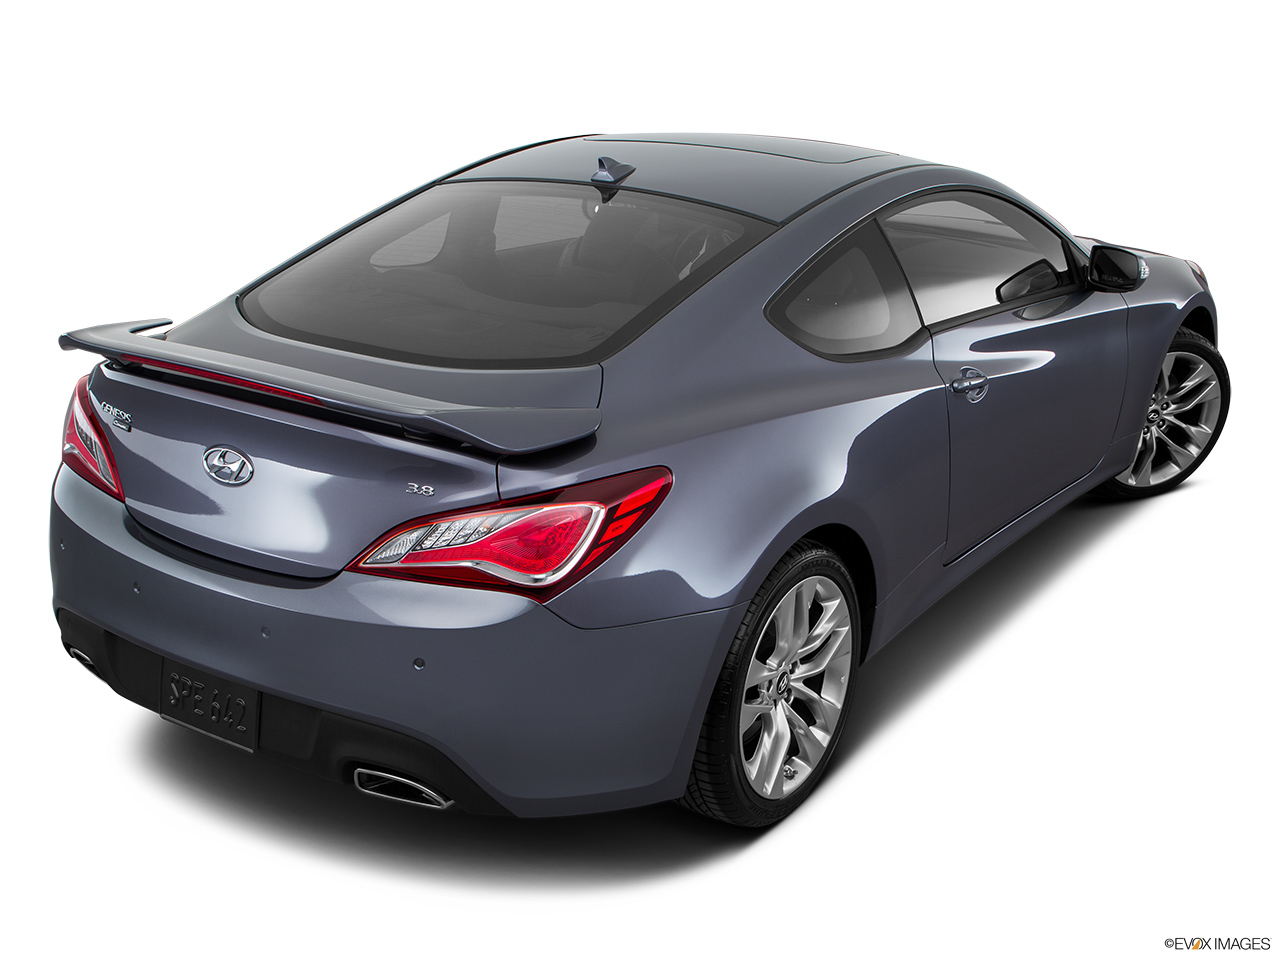 hyundai genesis coupe 2016 3 8l in qatar new car prices. Black Bedroom Furniture Sets. Home Design Ideas